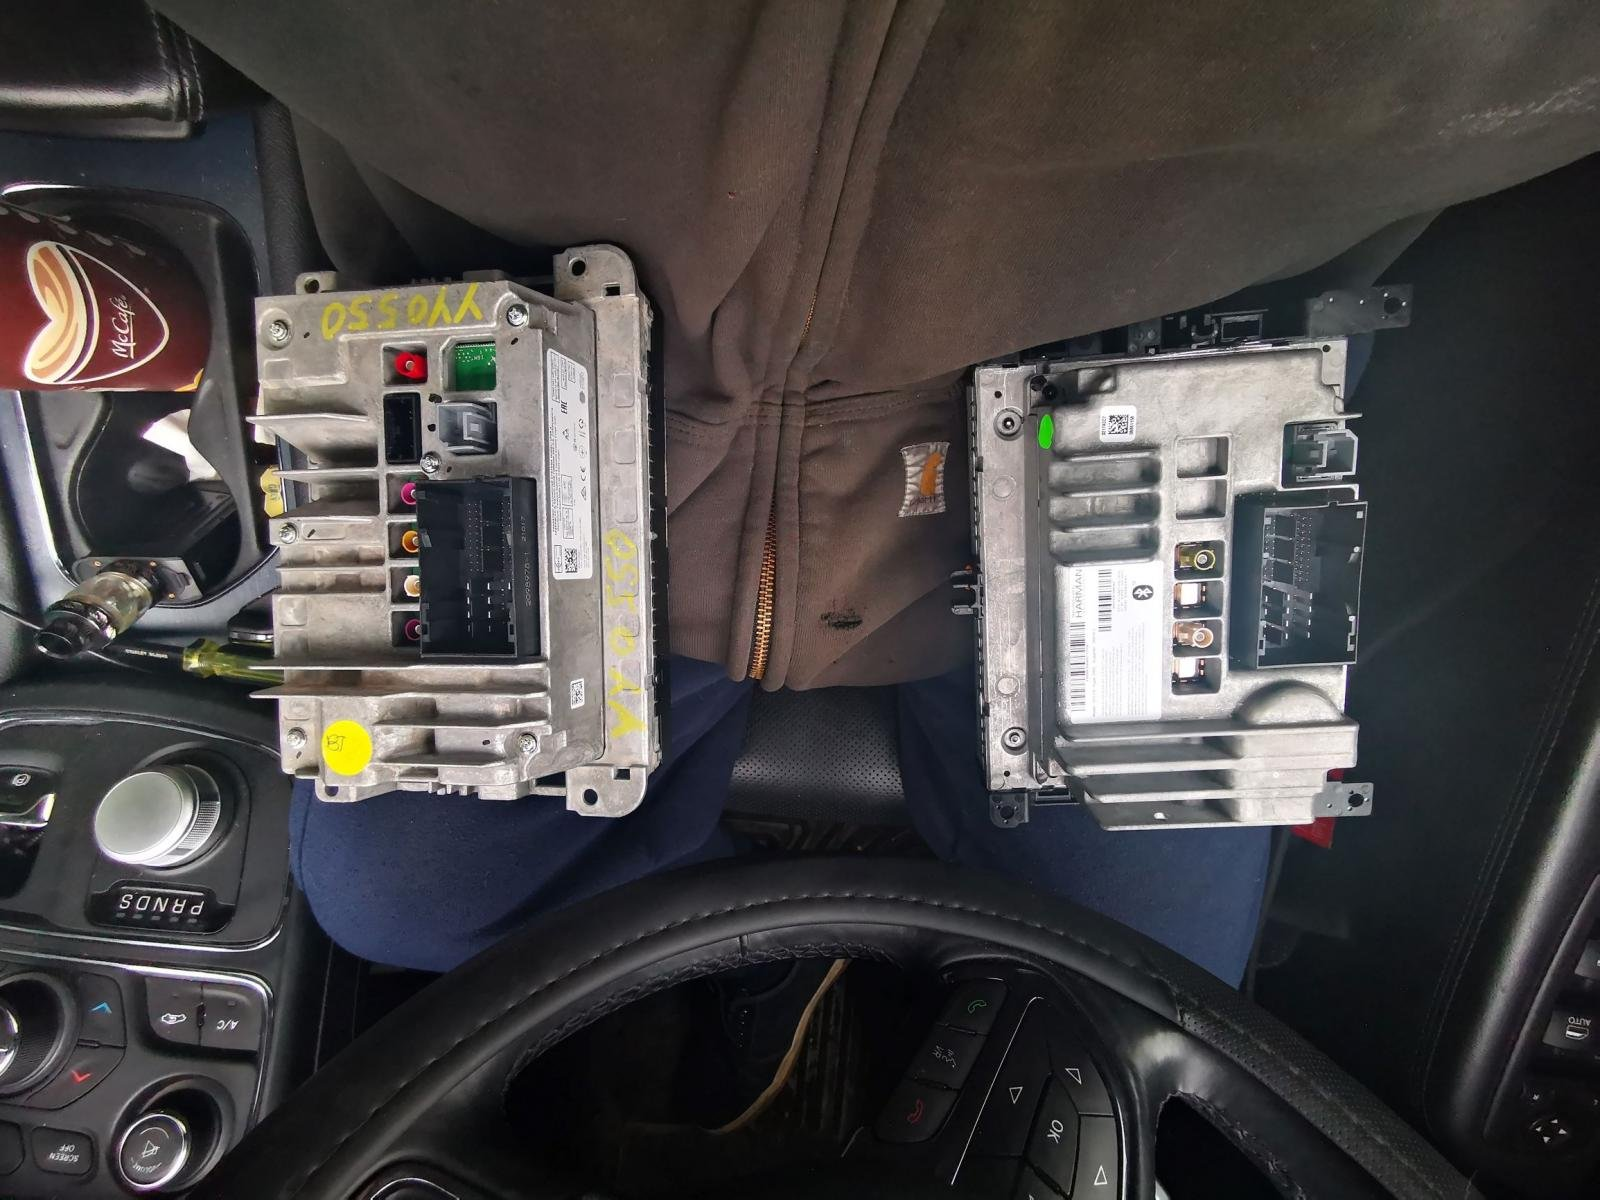 First Uconnect 4C swap? Going to need everyone's help-img_20190528_143149.jpg